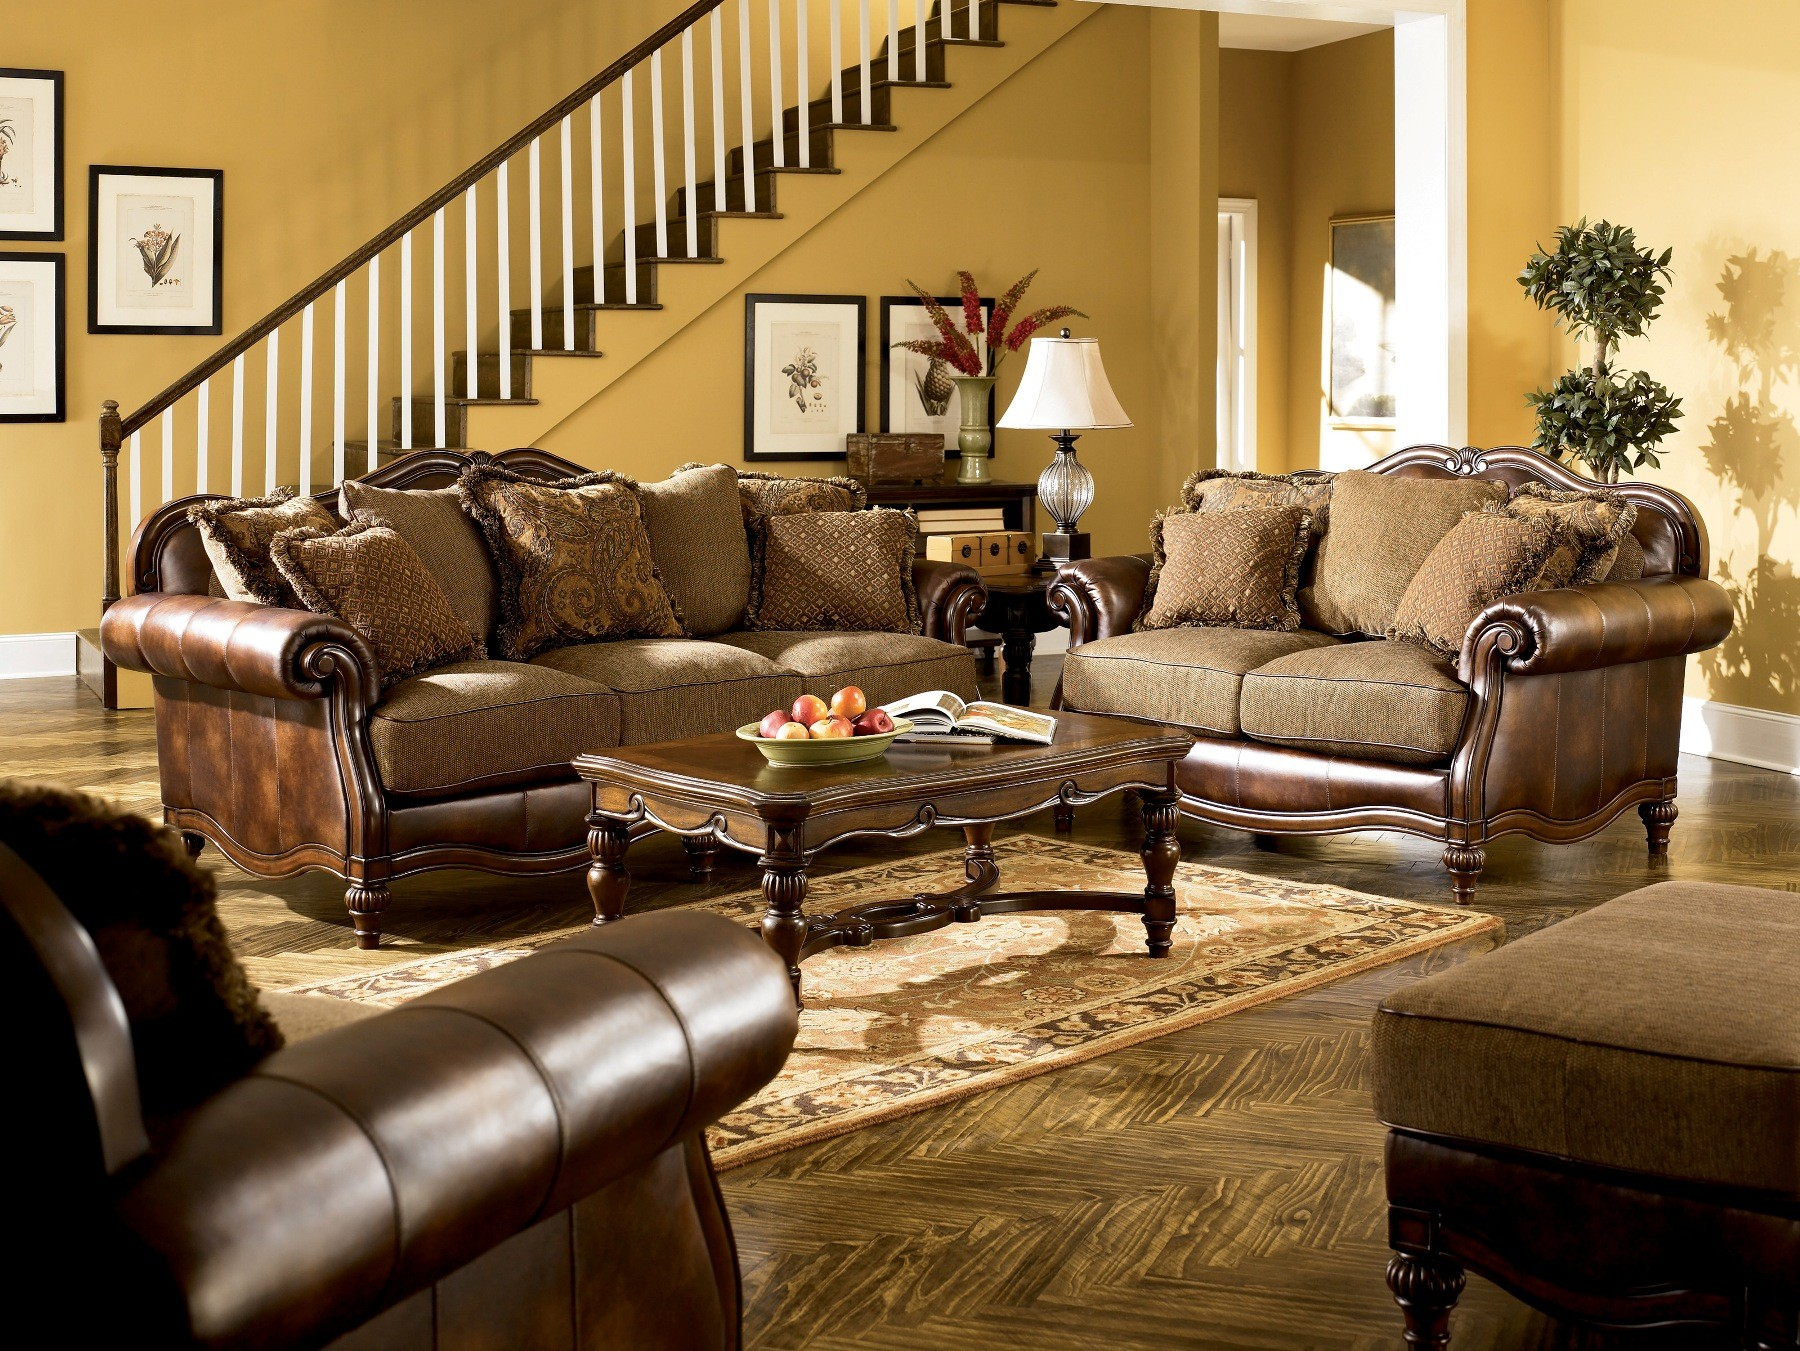 Claremore Antique Living Room Set From Ashley (84303